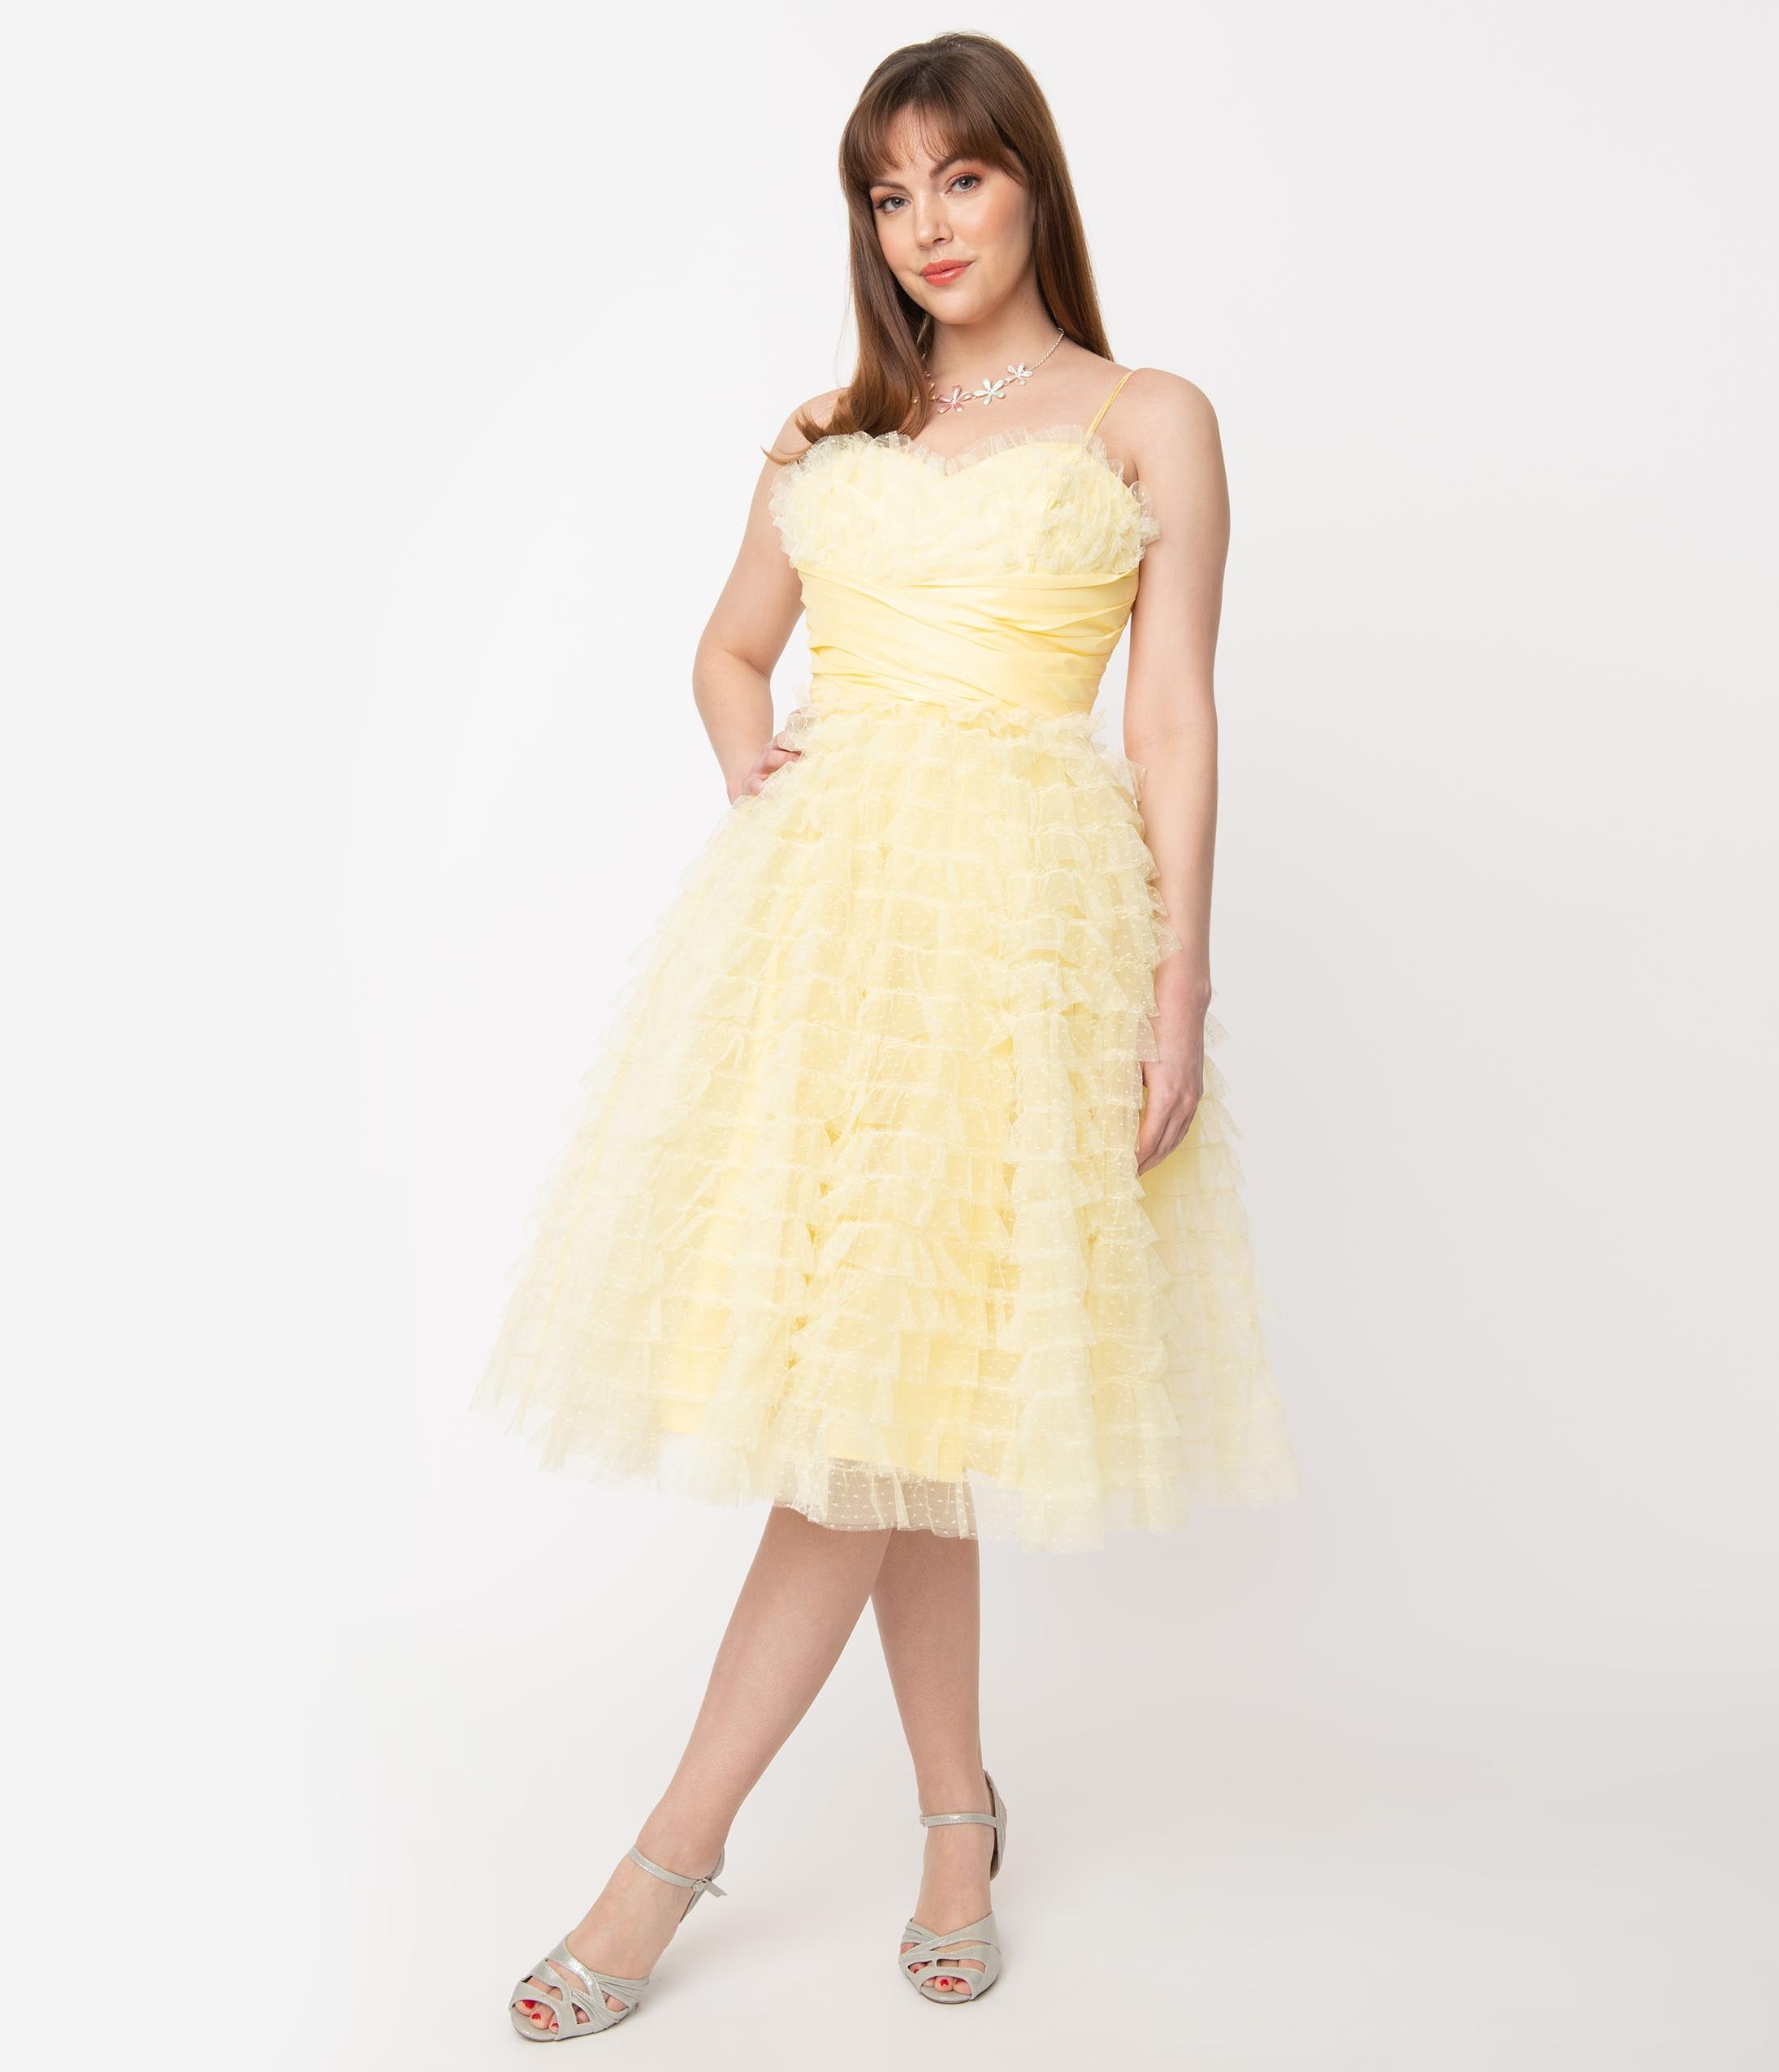 1950s Cocktail Dresses, Party Dresses Unique Vintage 1950S Yellow Ruffled Tulle Cupcake Swing Dress $110.00 AT vintagedancer.com